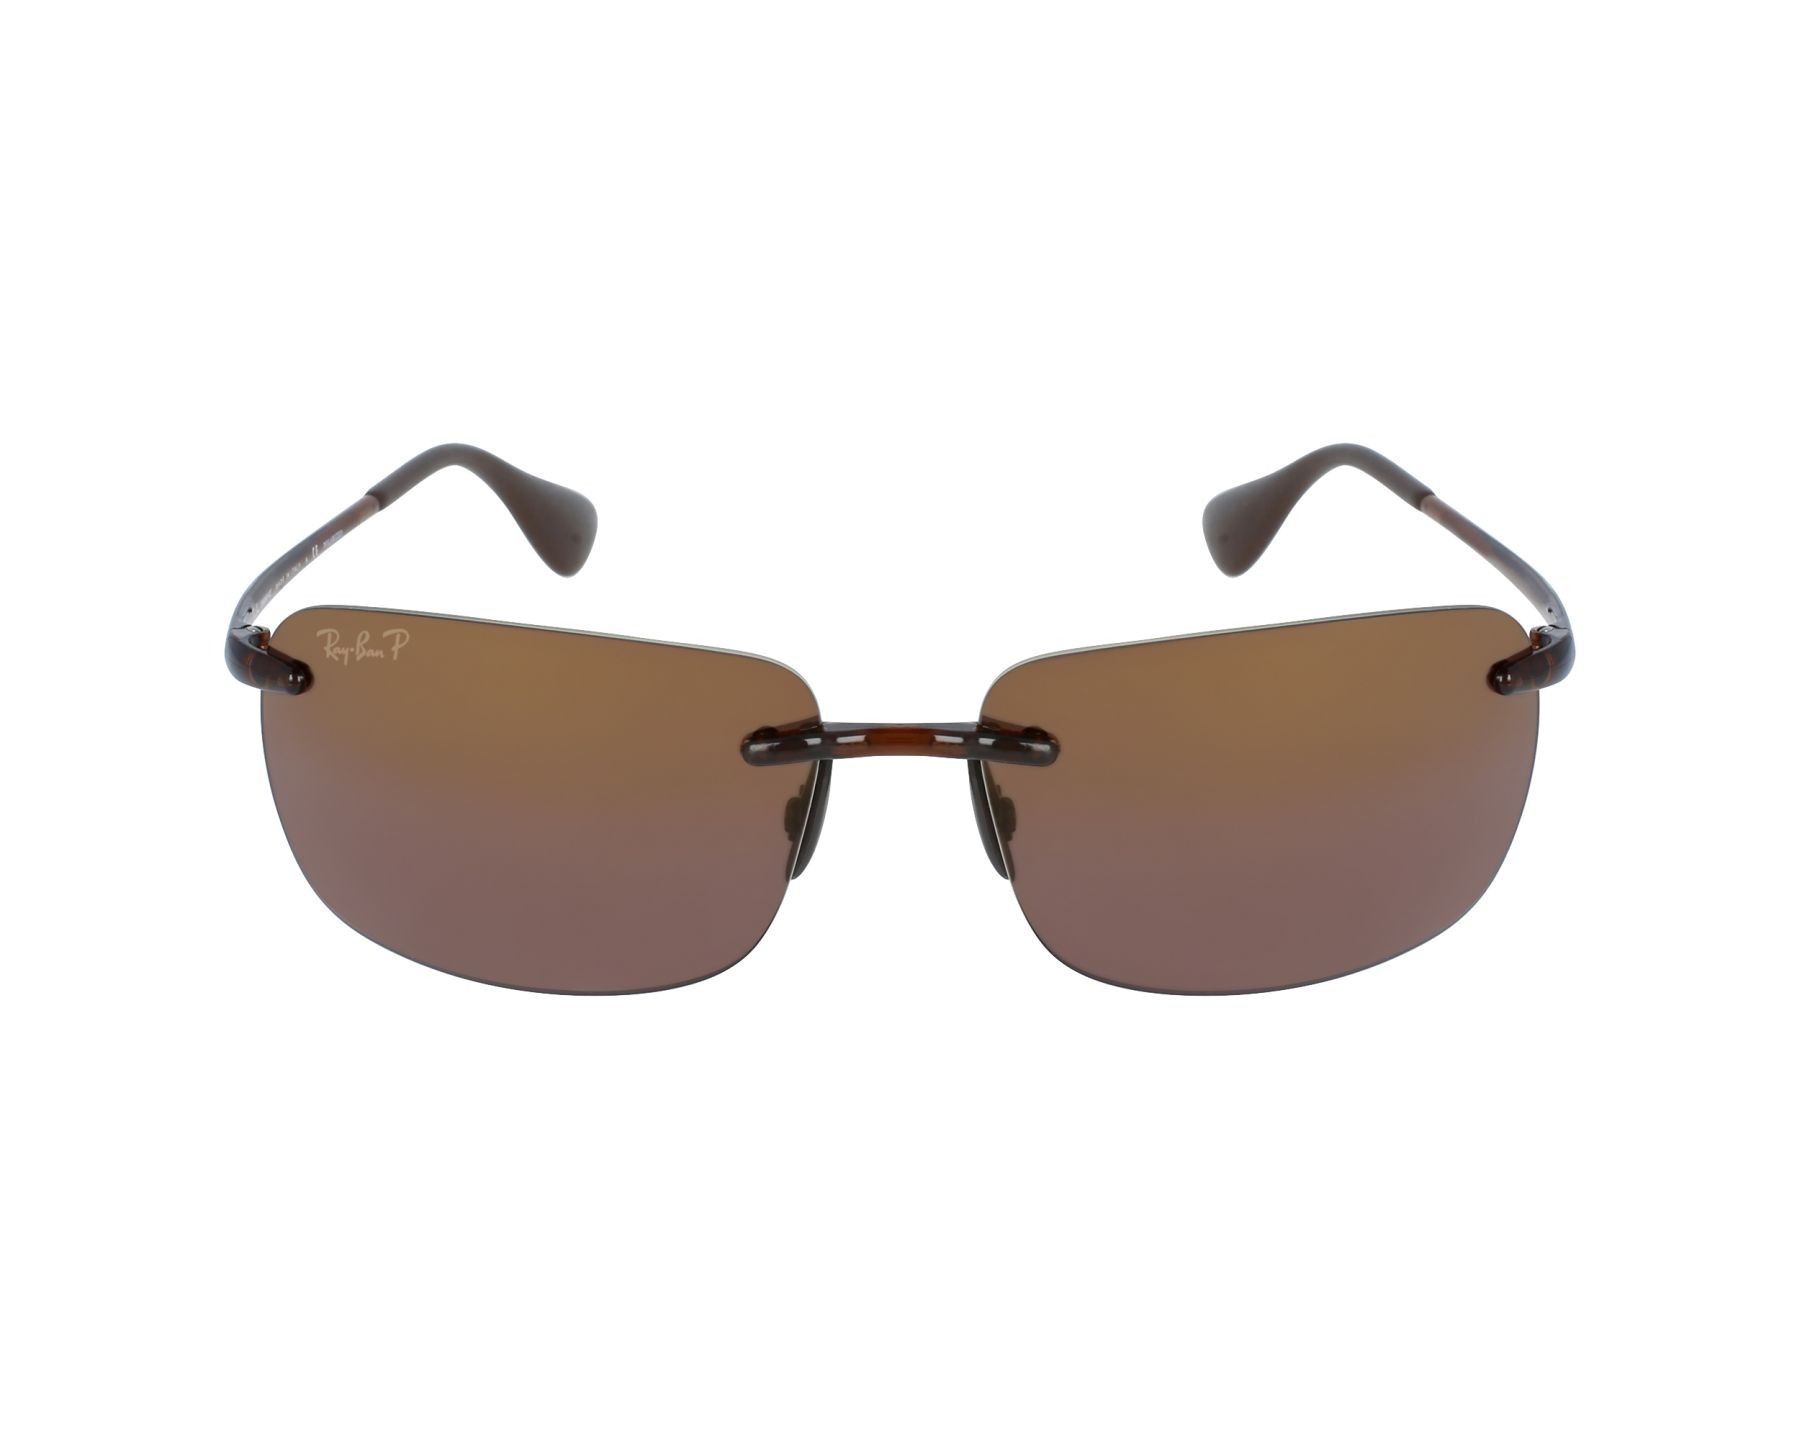 d04593fc91 Sunglasses Ray-Ban RB-4255 604 6B 60-15 Brown profile view